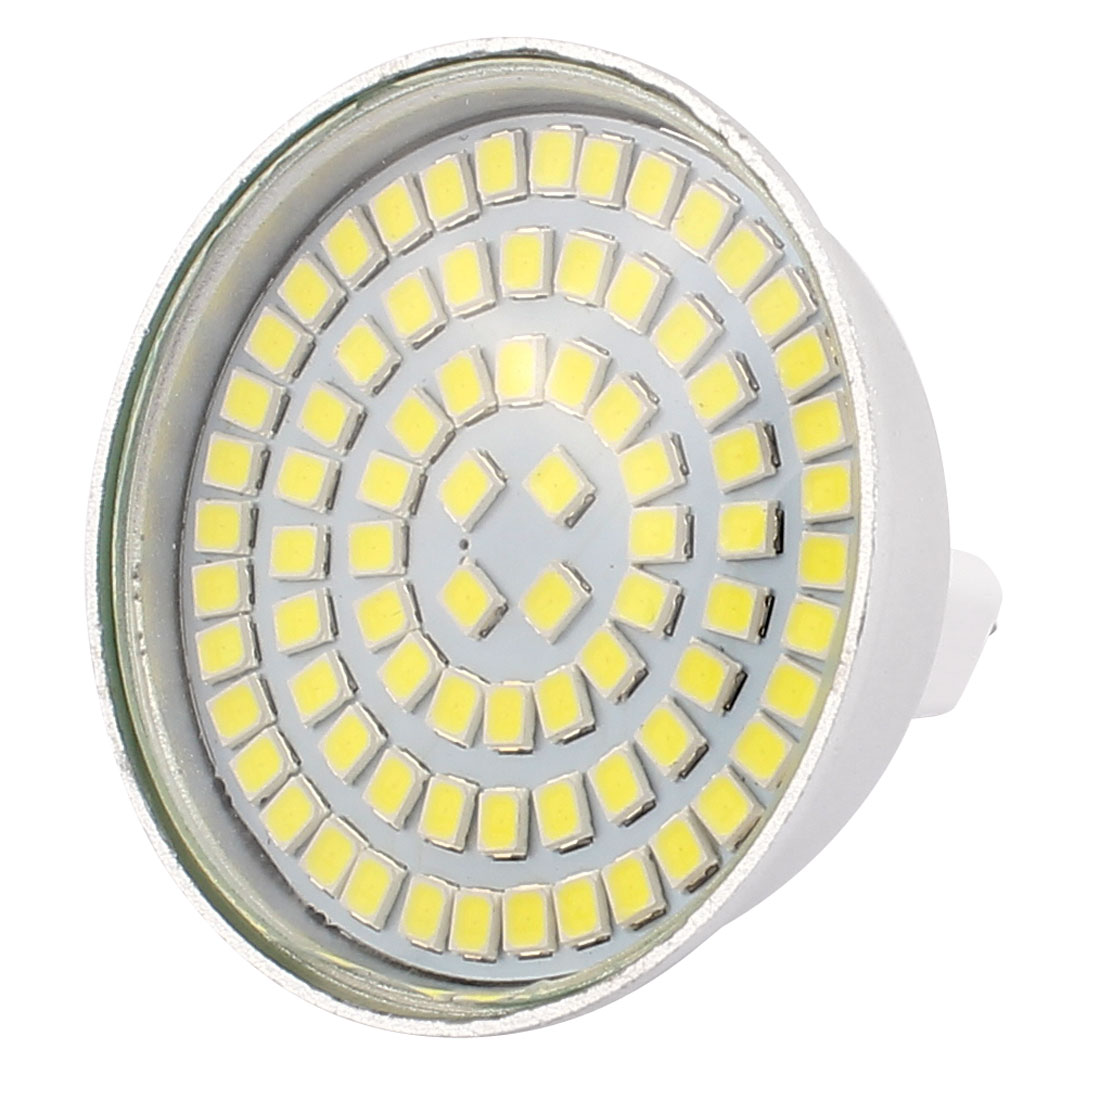 110V 8W MR16 2835 SMD 80 LEDs LED Bulb Light Spotlight Lamp Energy Saving White